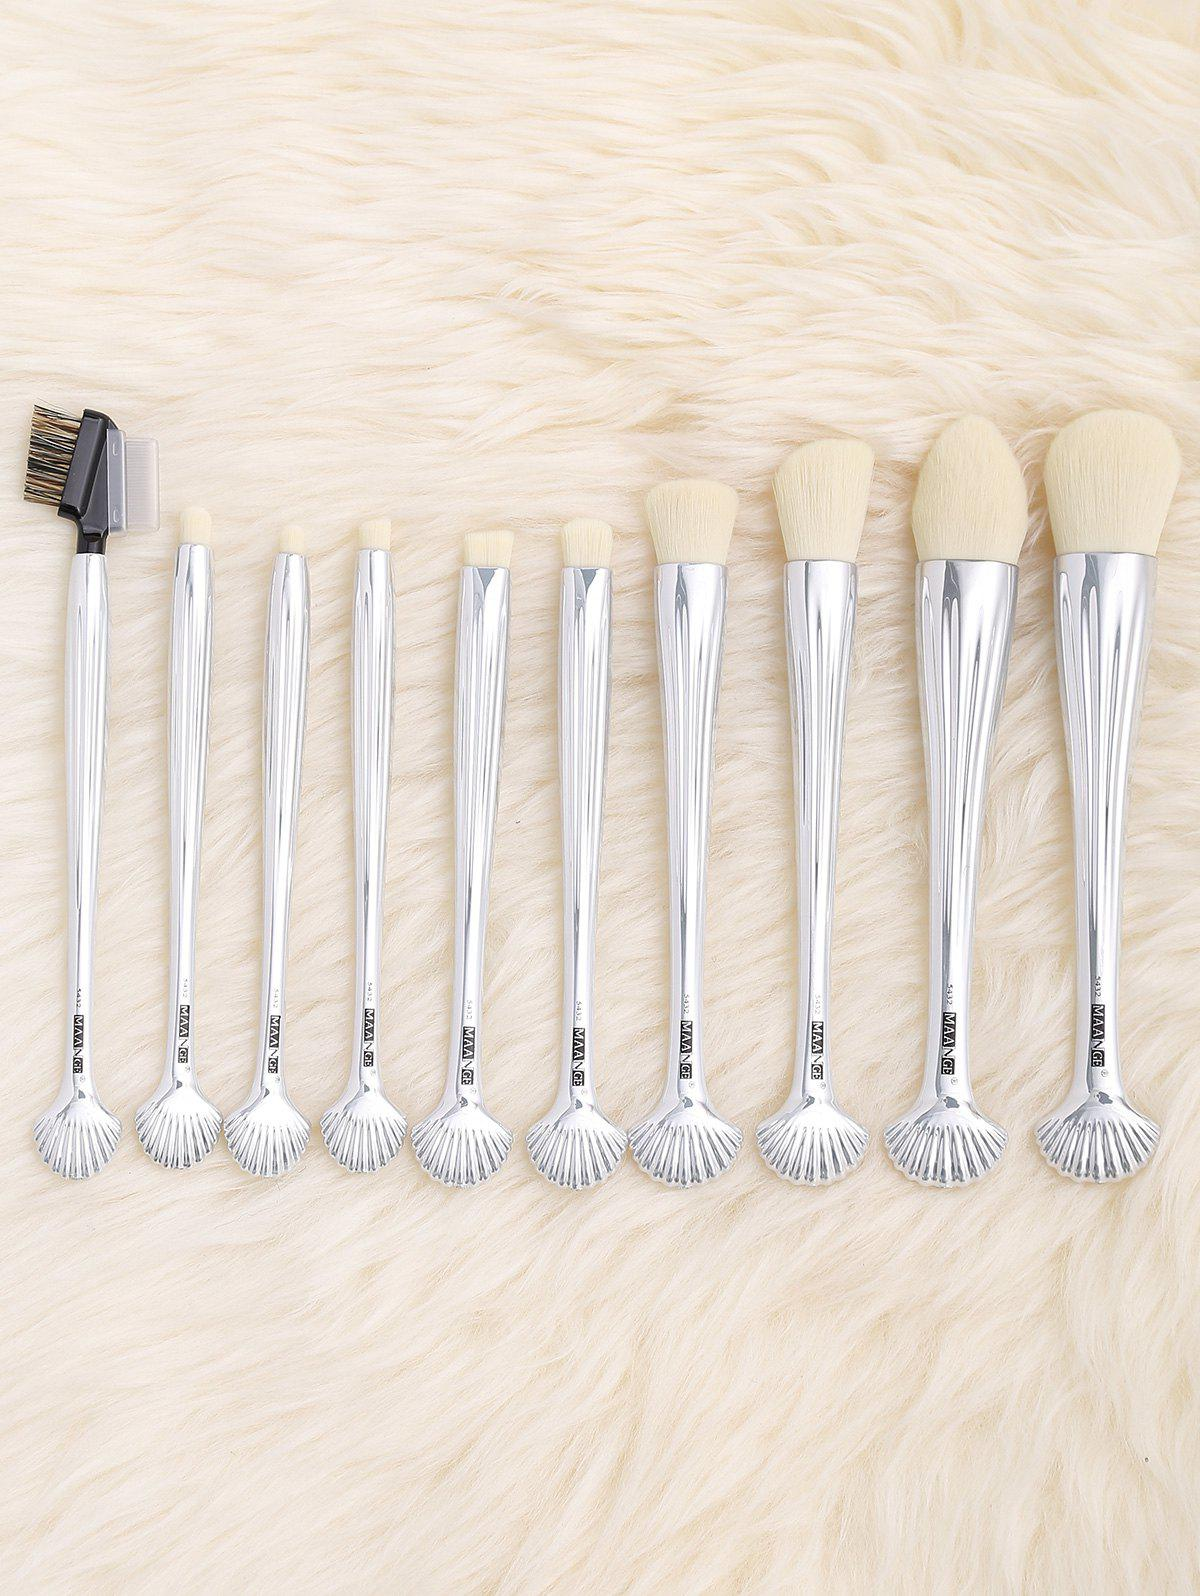 10Pcs Multifunction Gradient Color Shell Design Brushes Set - SILVER WHITE